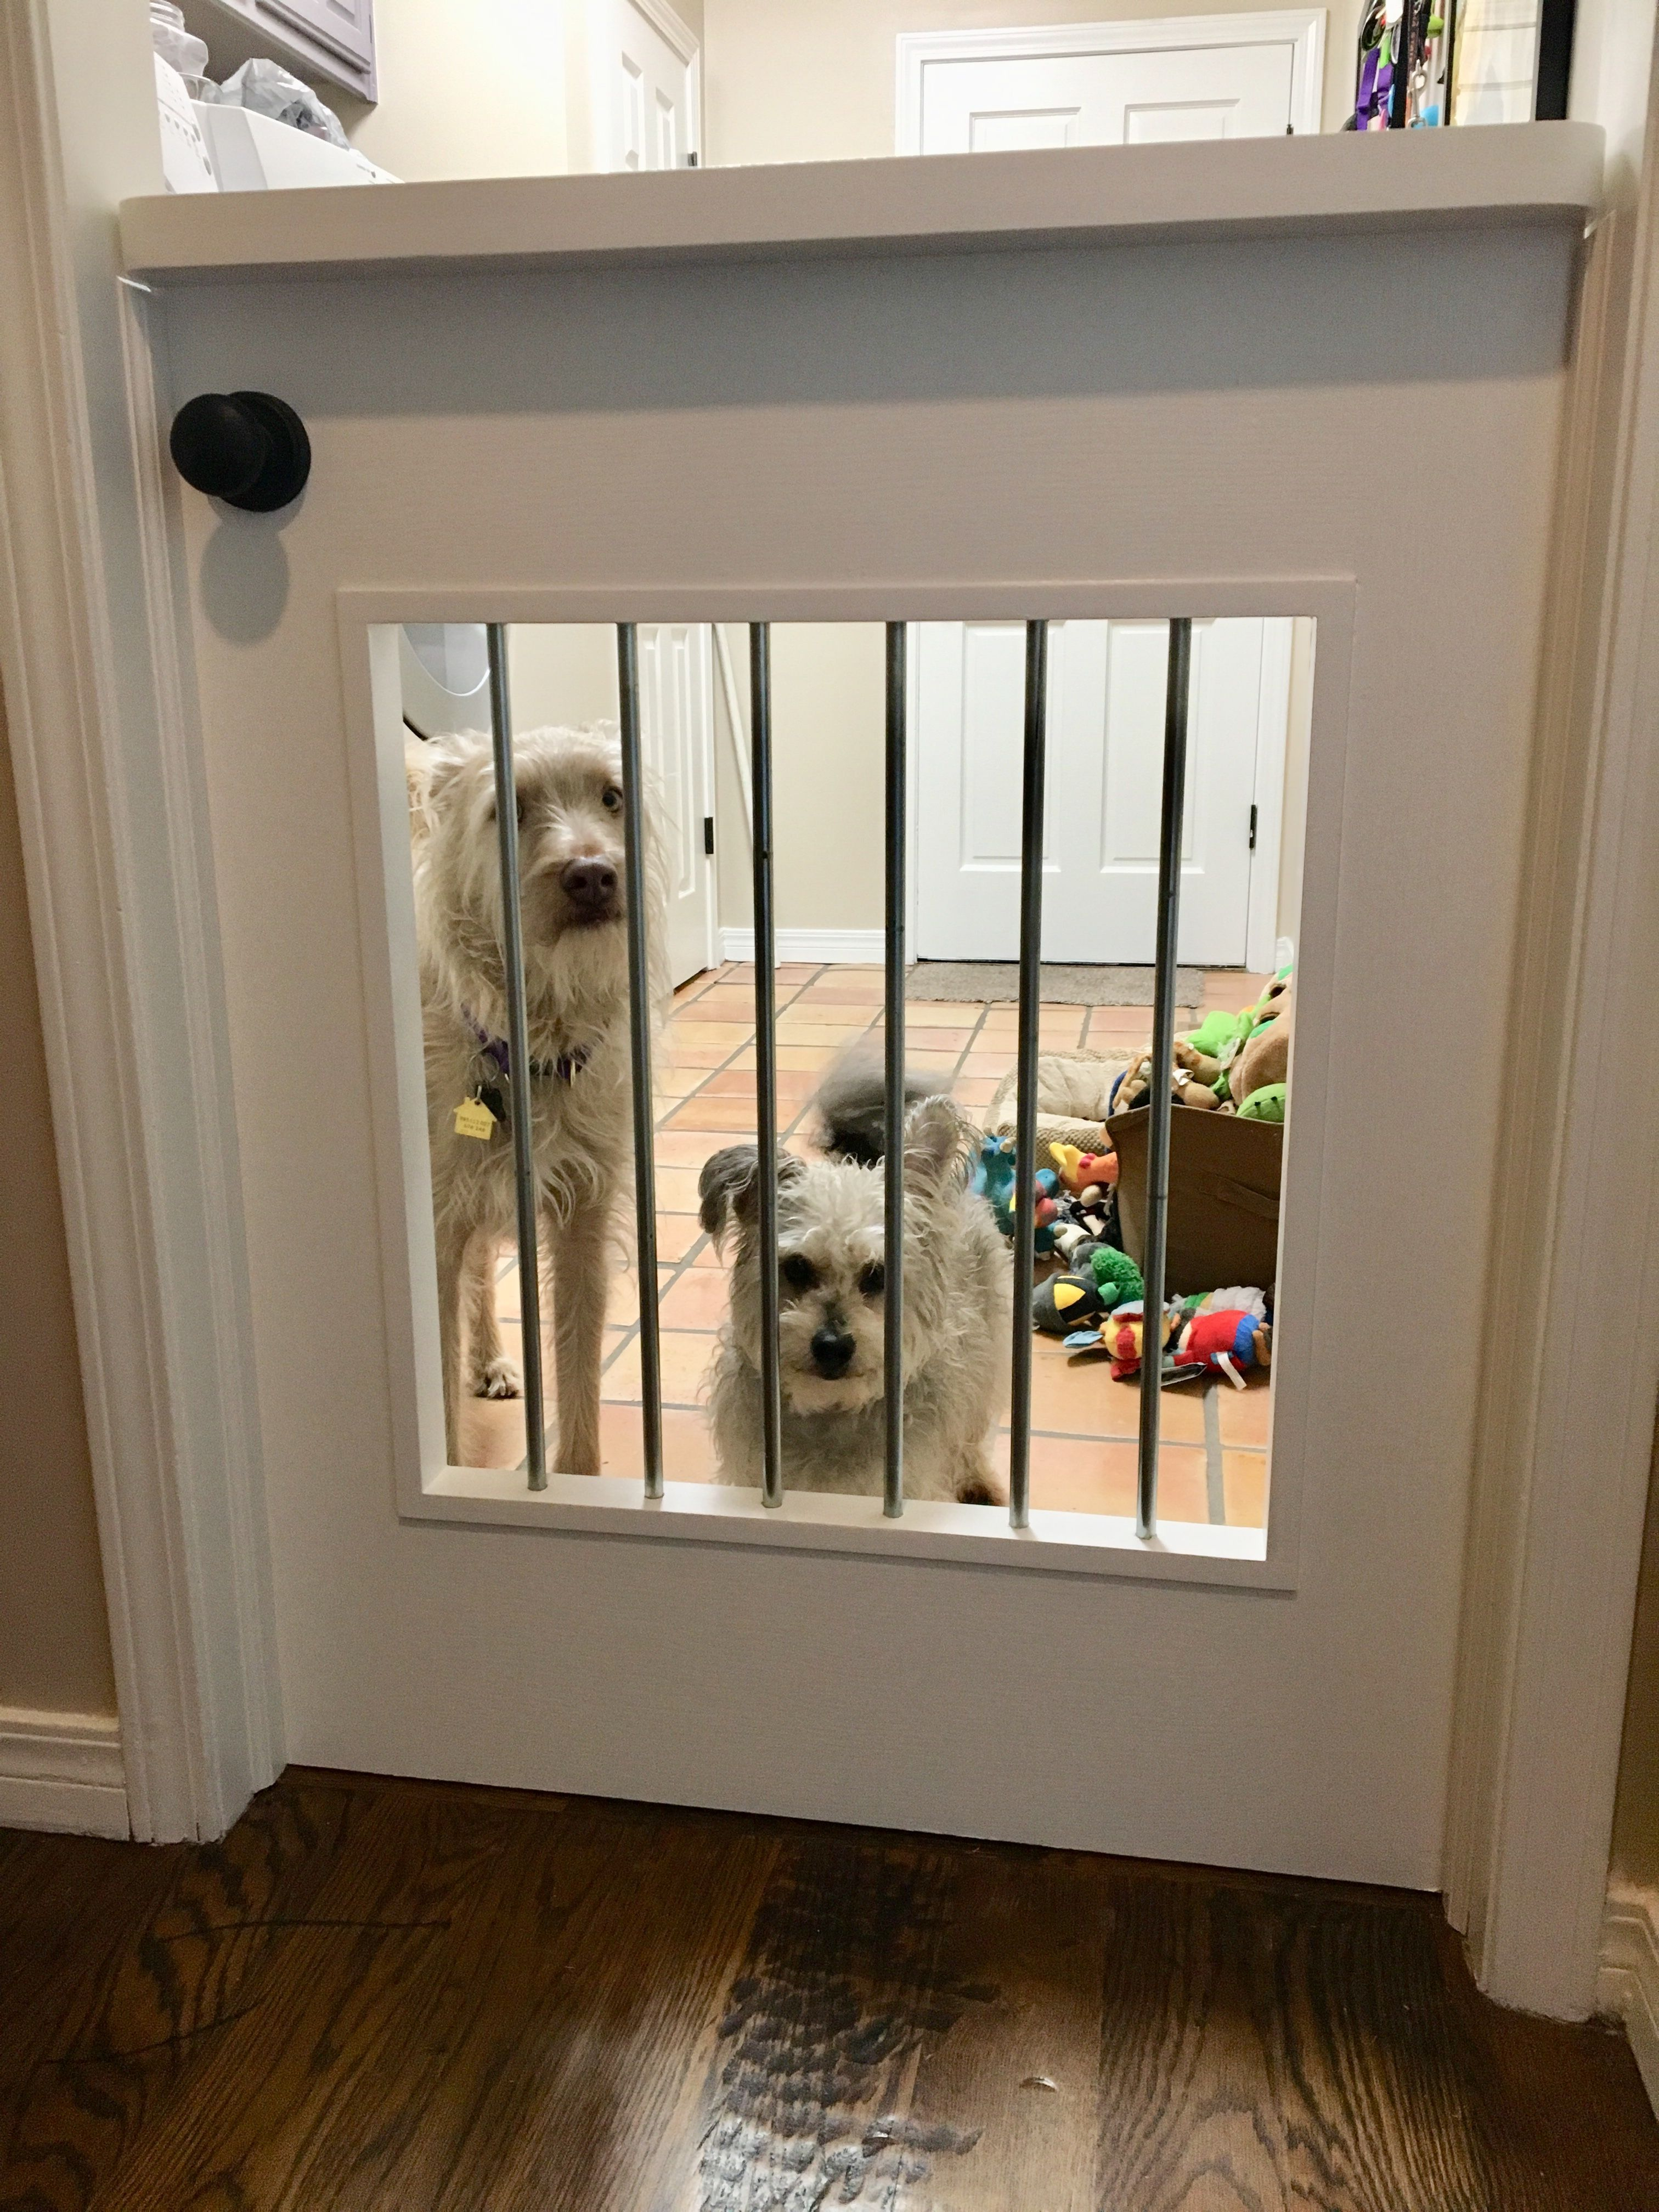 13 Diy Dog Gate Ideas: Took An Existing Door